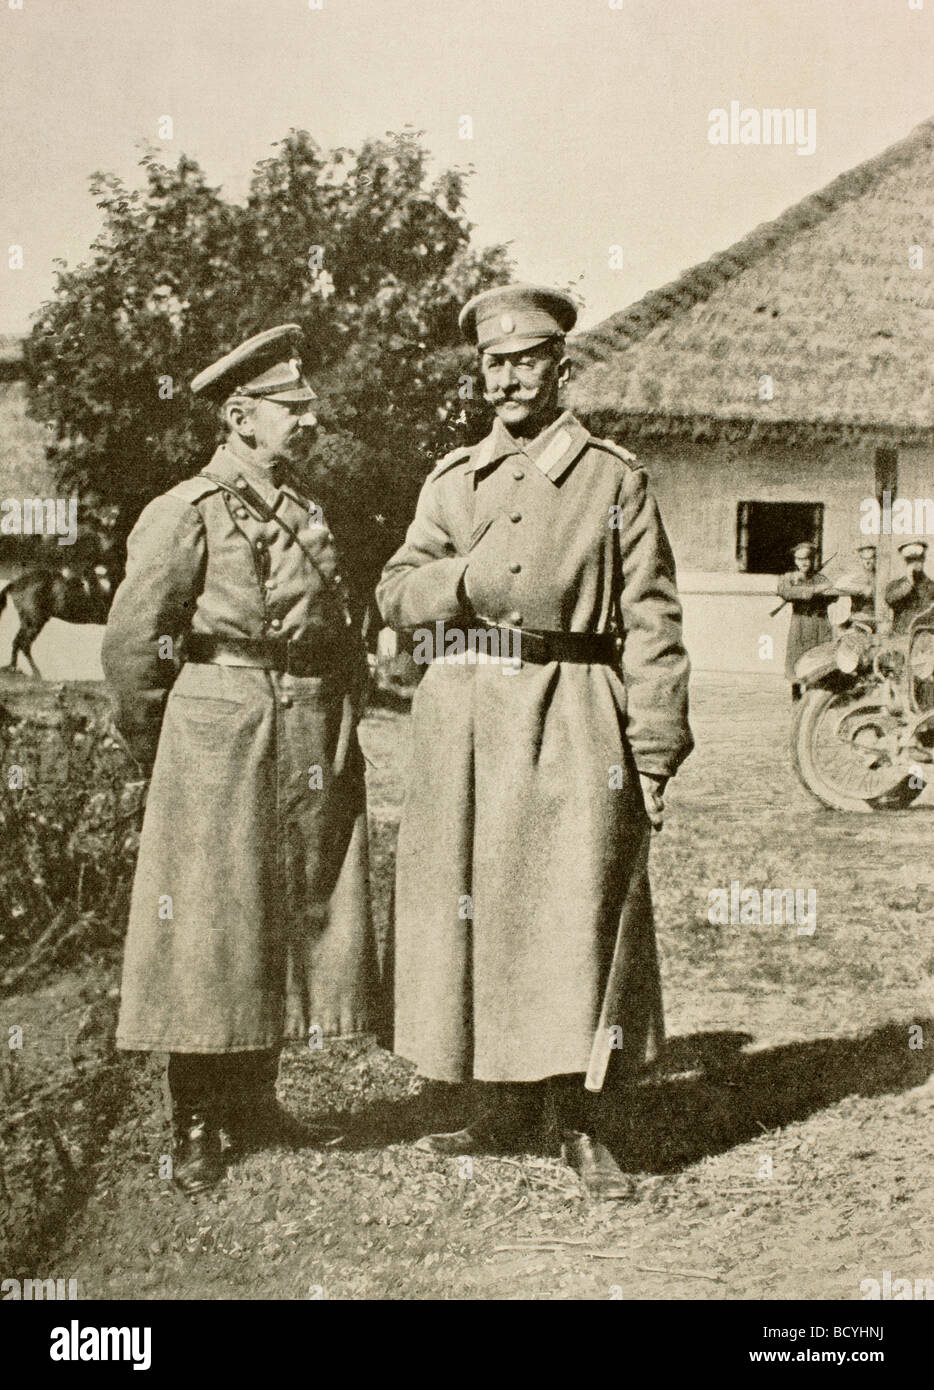 Russian Field Marshal Count Joseph Vladimirovich Romeyko Gourko left, and General Aleksei Alekseevich Brusilov right. - Stock Image